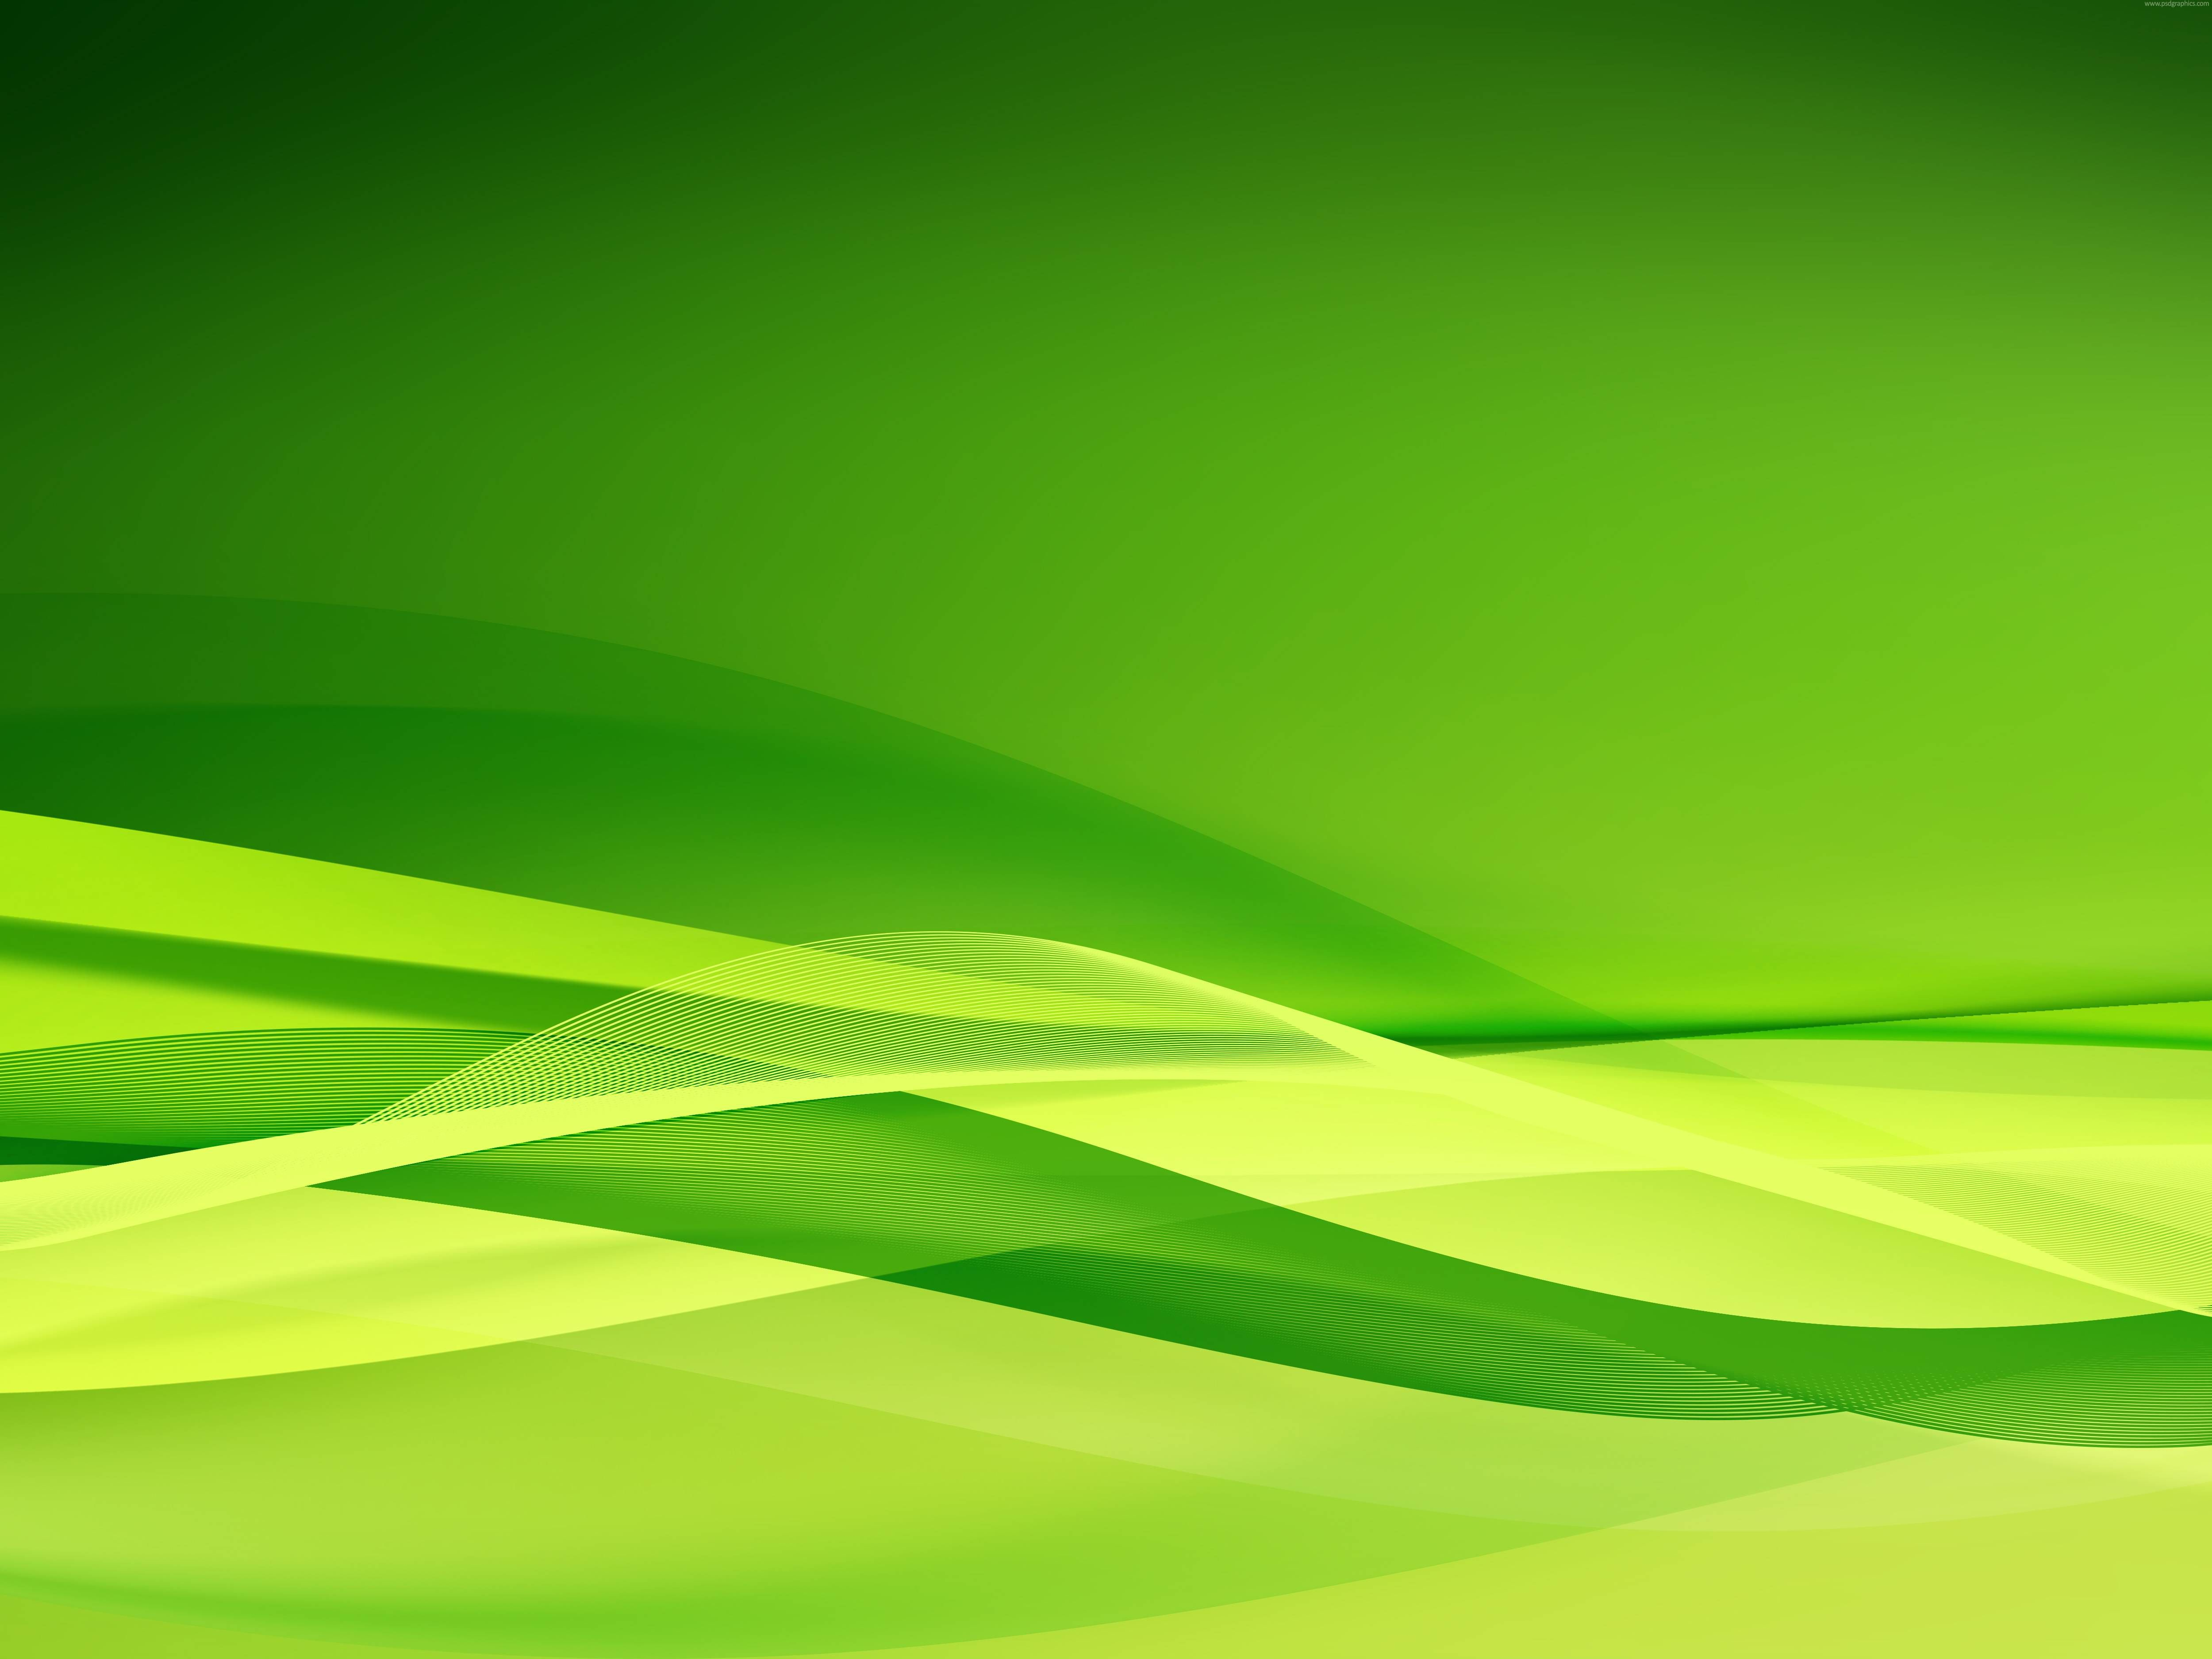 Lime Green Backgrounds Wallpaper Cave Lime Green Wallpaper Green Backgrounds Green Wallpaper